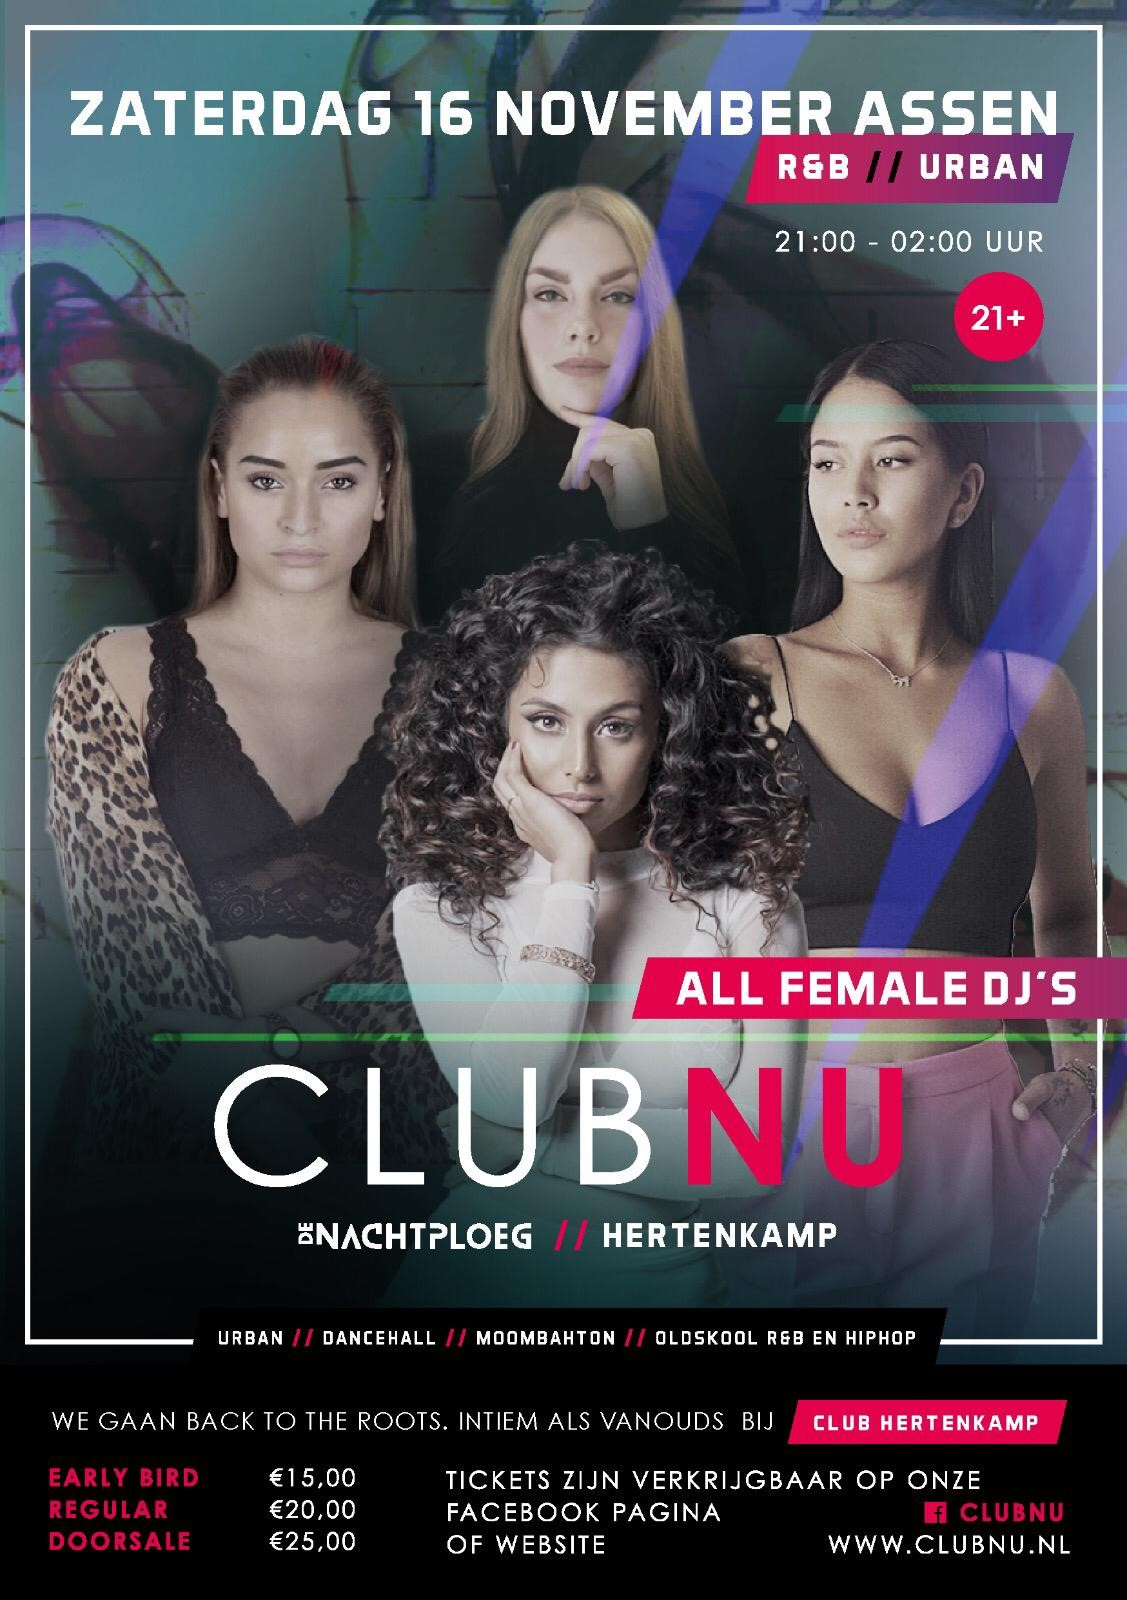 16-november-clubnu-hertenkamp-assen